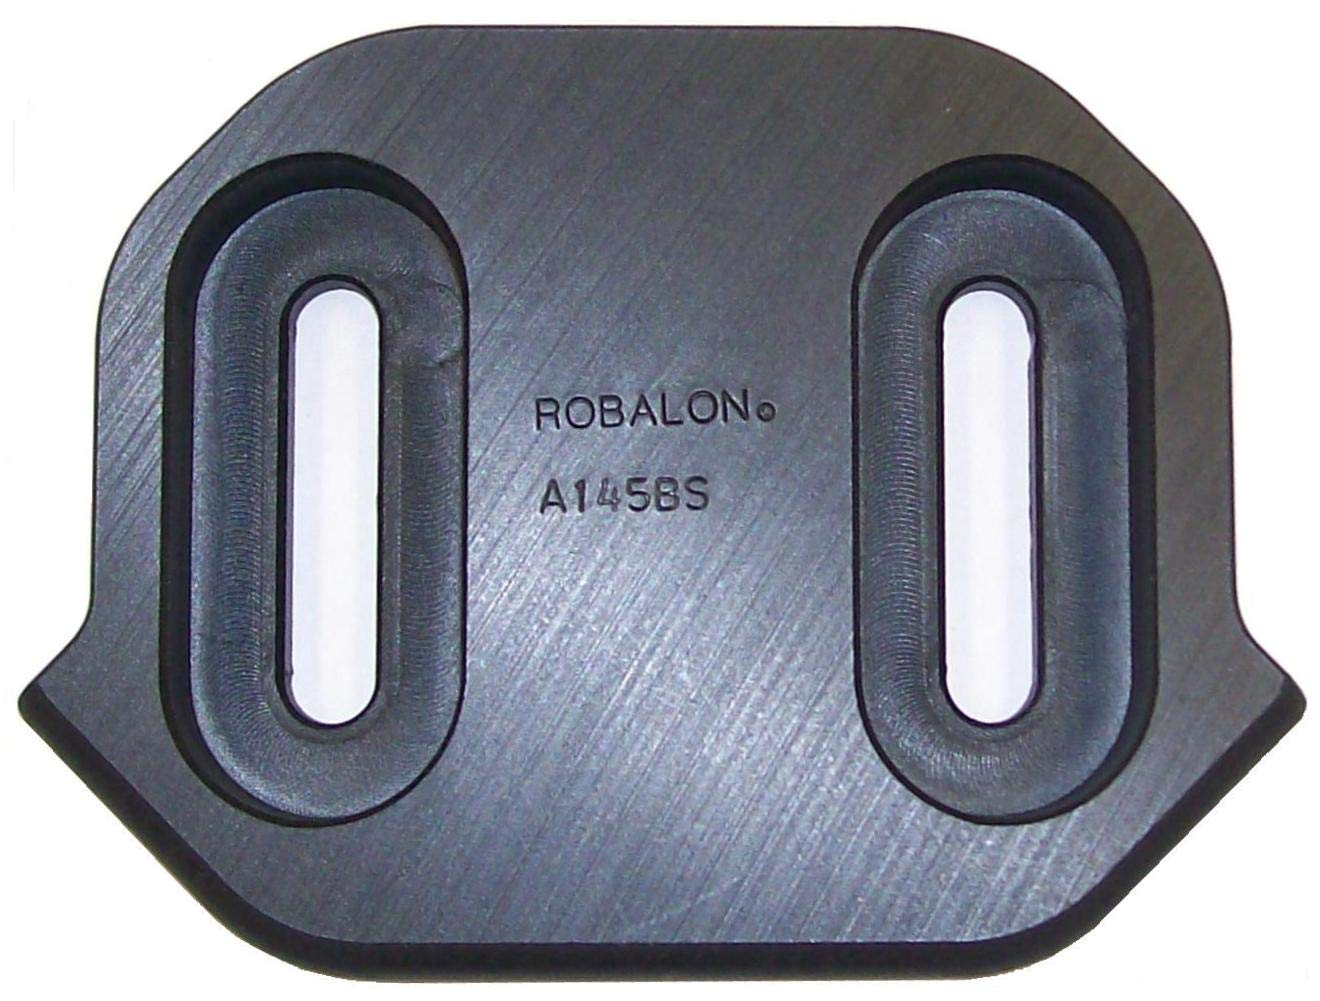 Robalon A145BS Composite Skid Shoe, Replaces Ariens/Johne Deere 02483059, AM123315 Black by Robalon